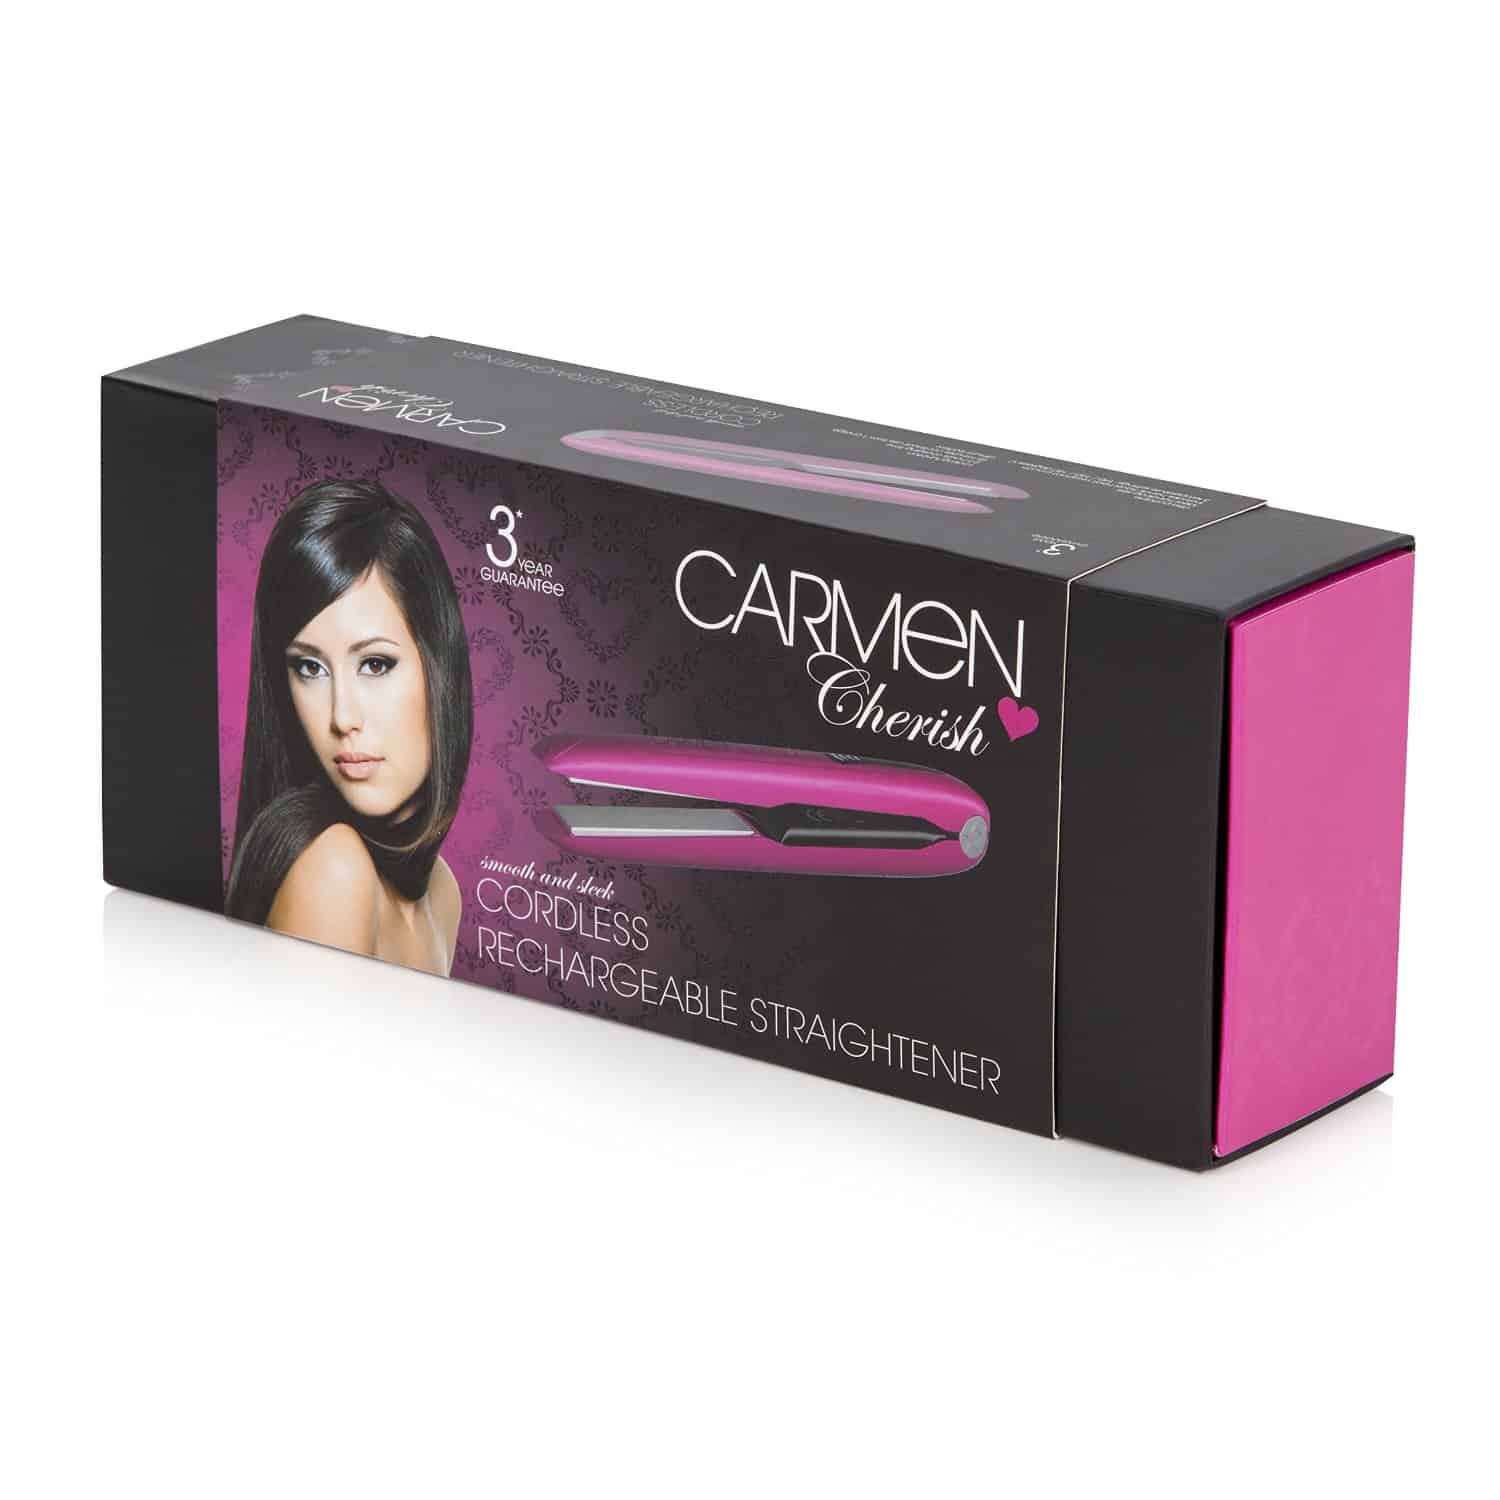 Carmen C81015 Cordless Rechargeable Mini Hair Straightener package